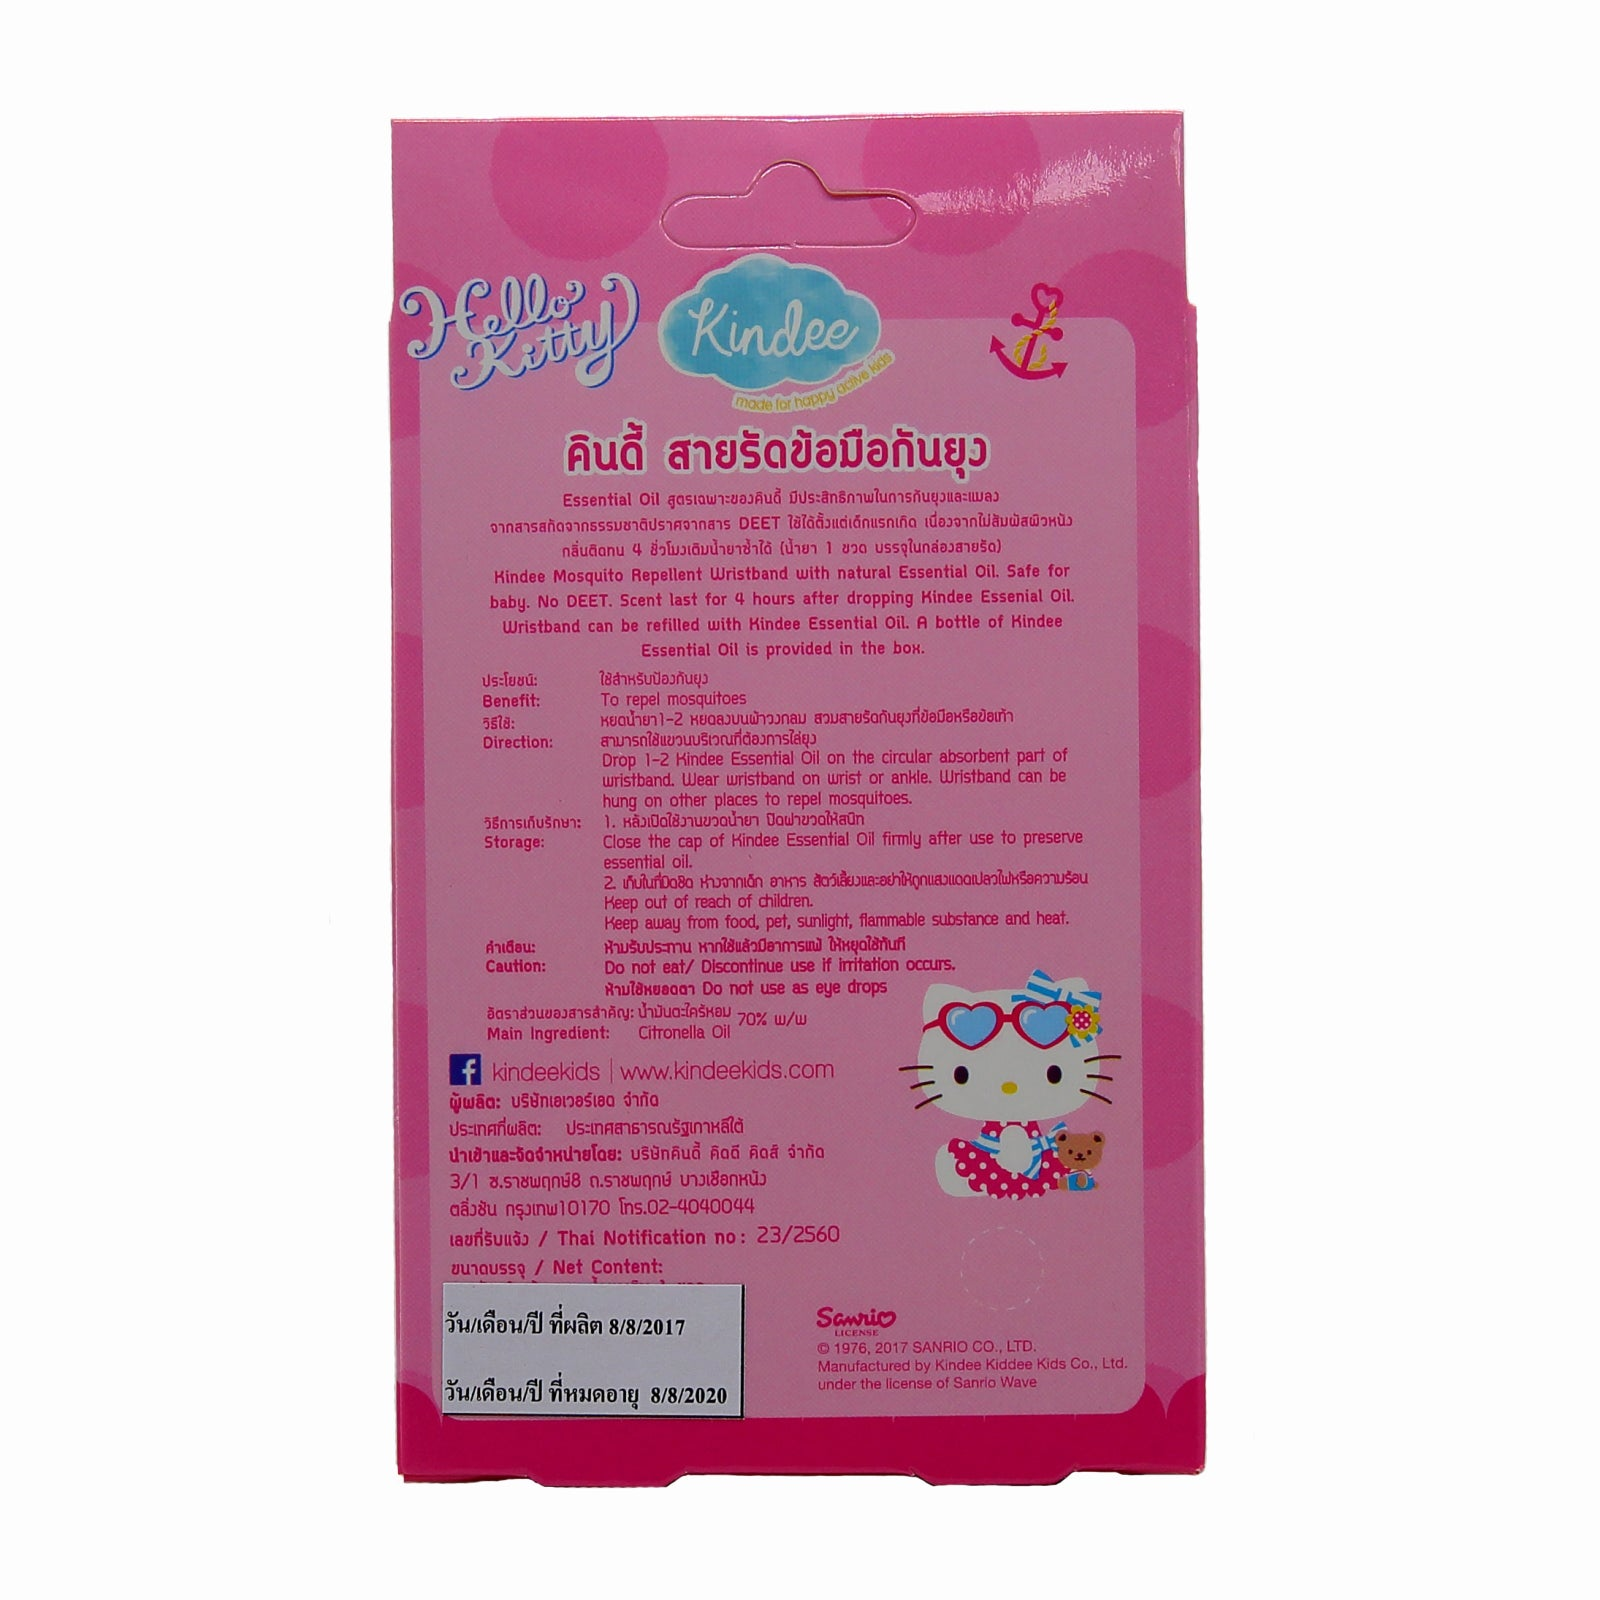 KIndee - Mosquito Repellent Wristband - Hello Kitty ( Wristband + Refill )- 5ml.